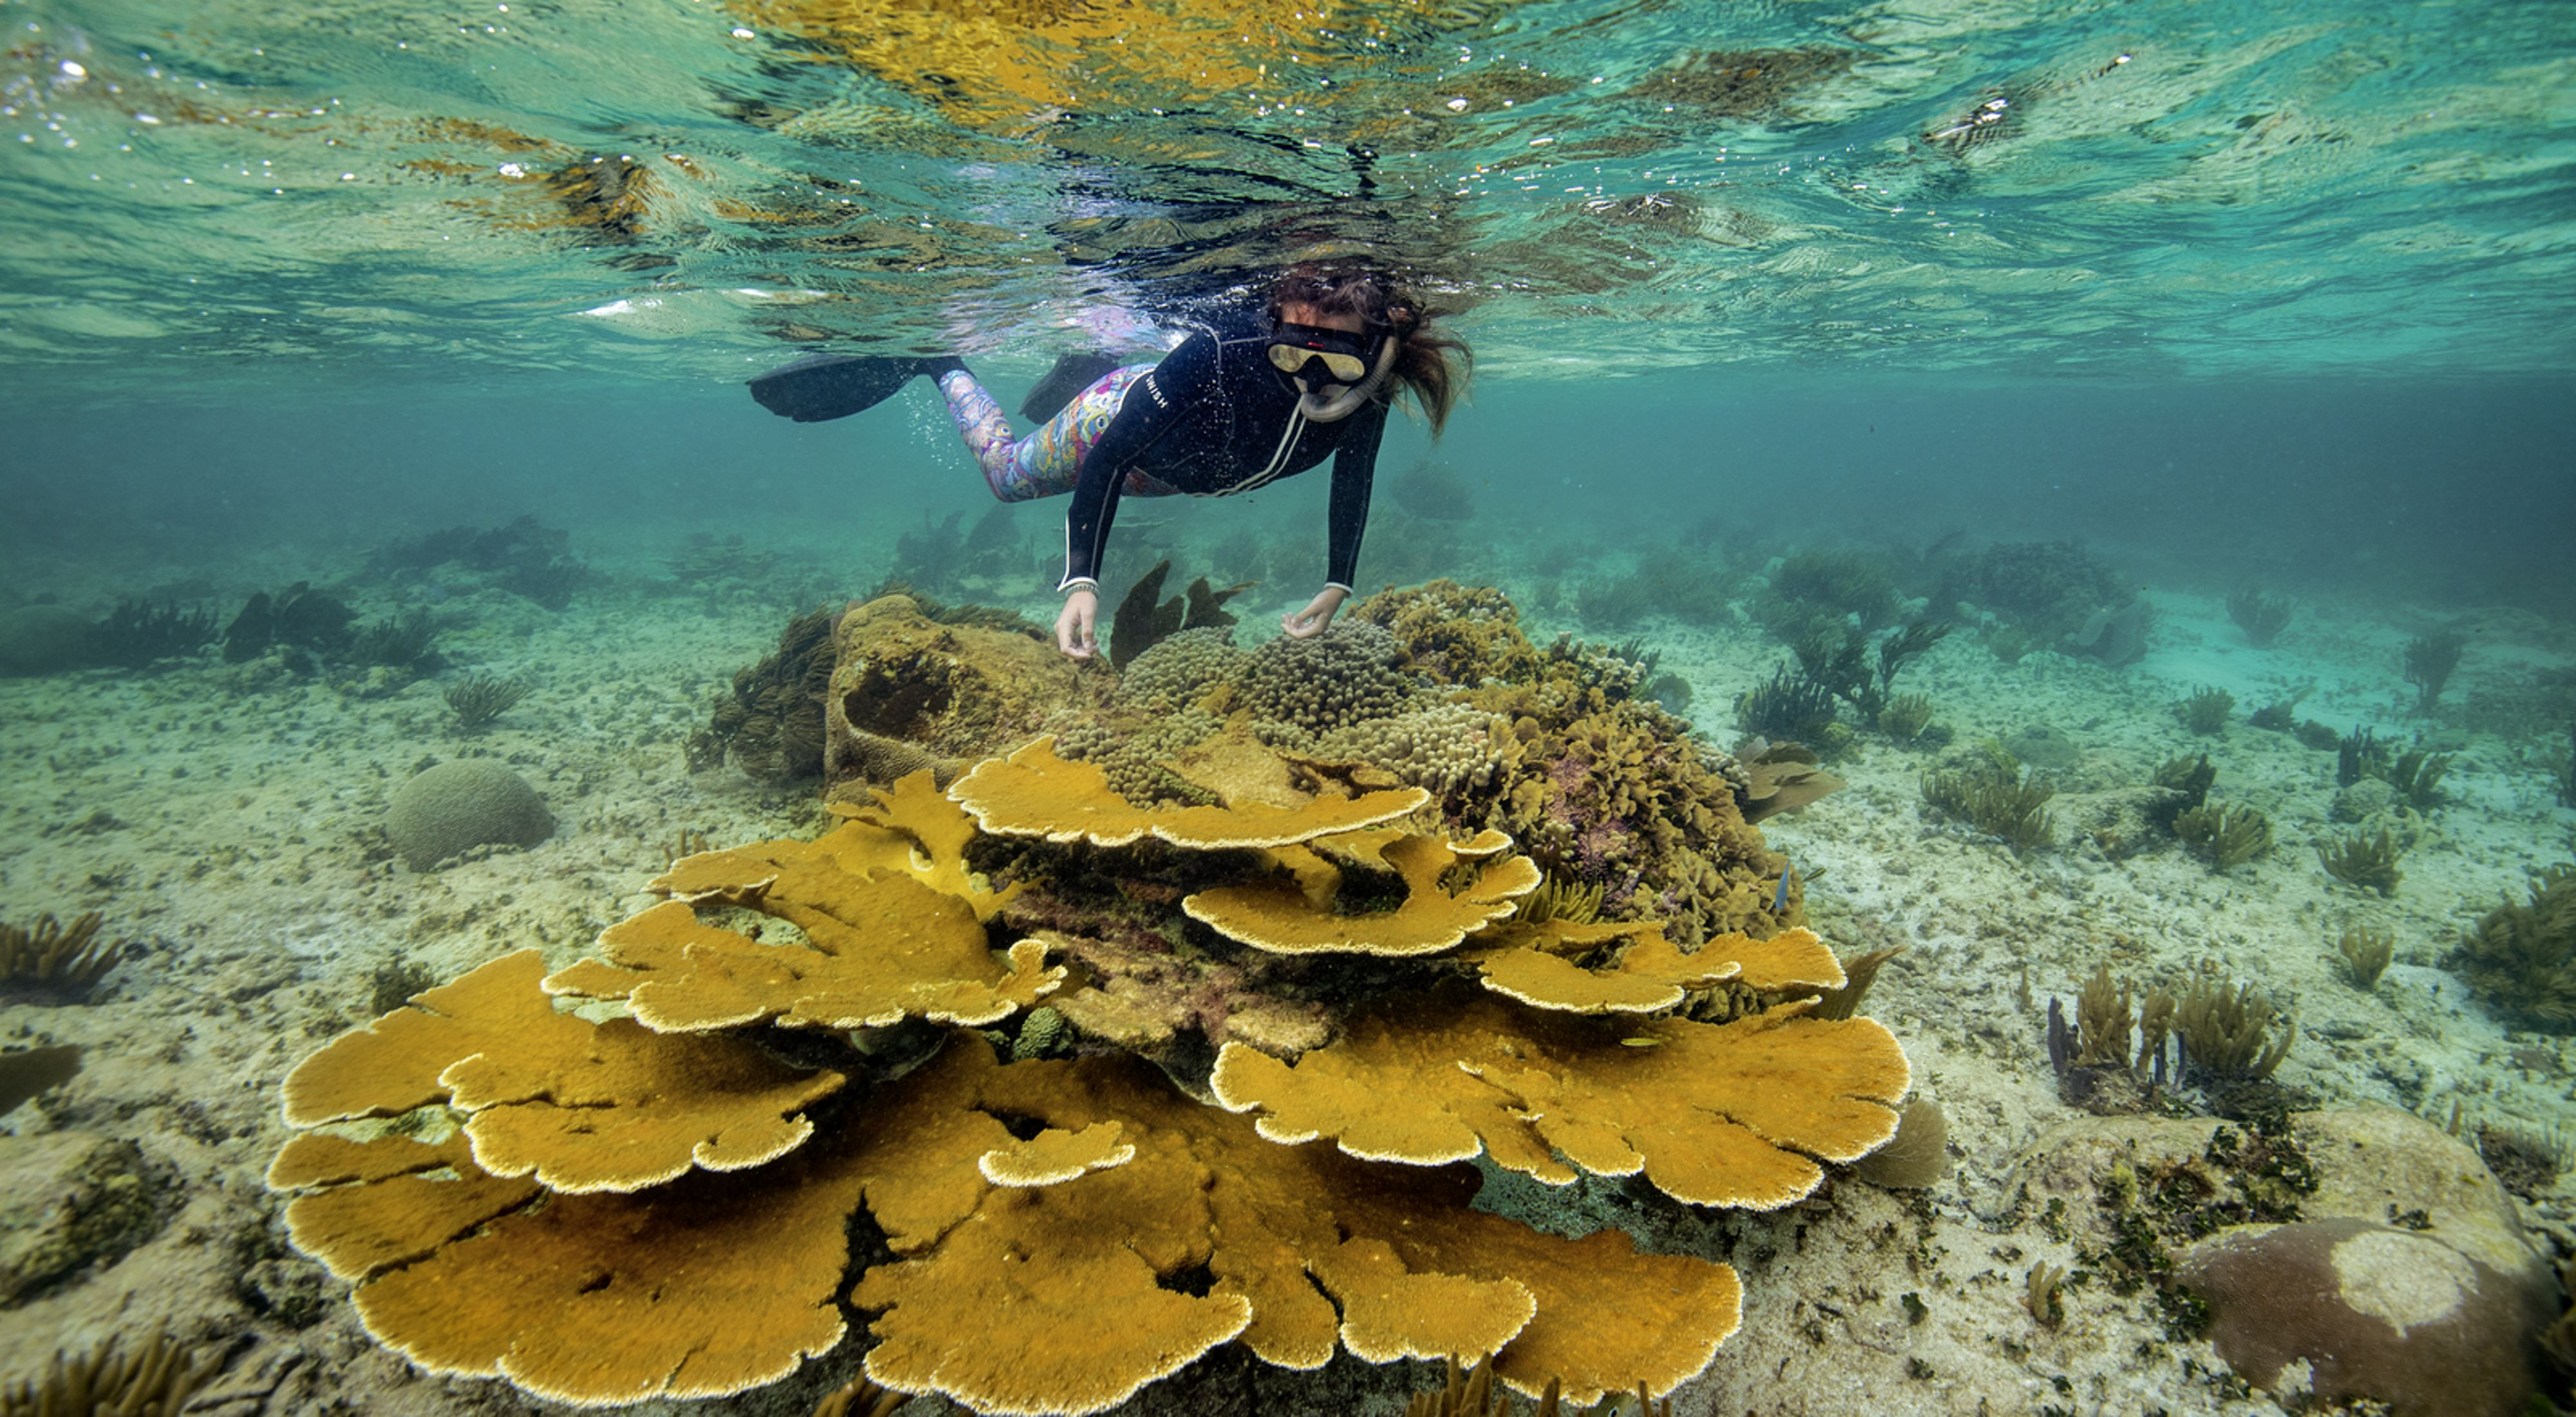 A snorkeler swims past a large stand of elkhorn coral (Acropora palmata) along a reef north of main dock in Puerto Morelos, Mexico.